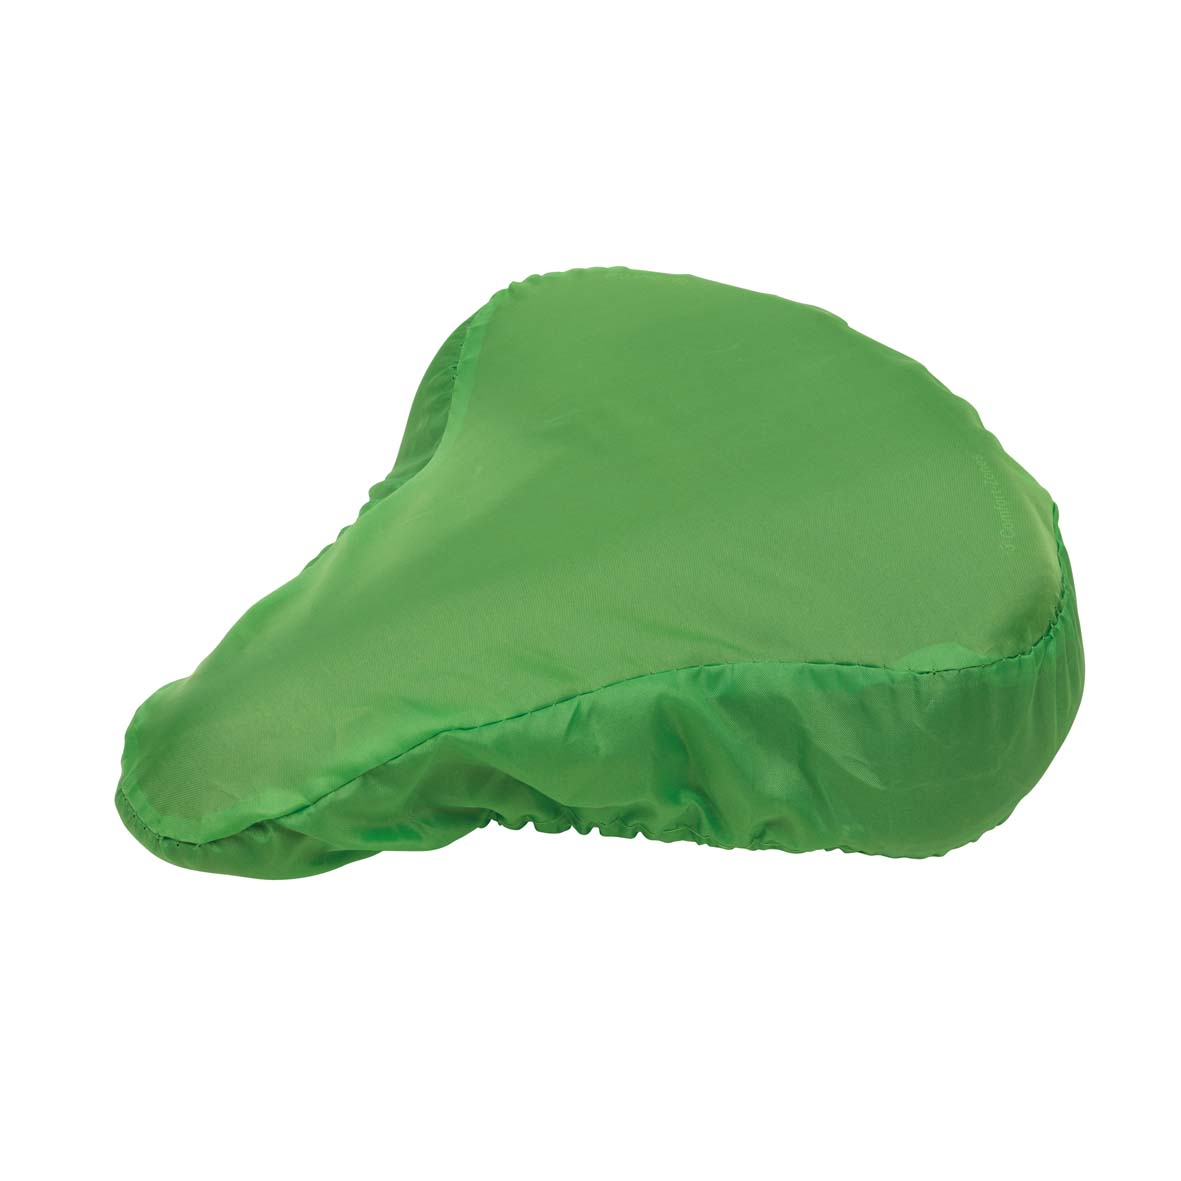 Bicycle seat cover 'Dry Seat' - Green ins-0402465